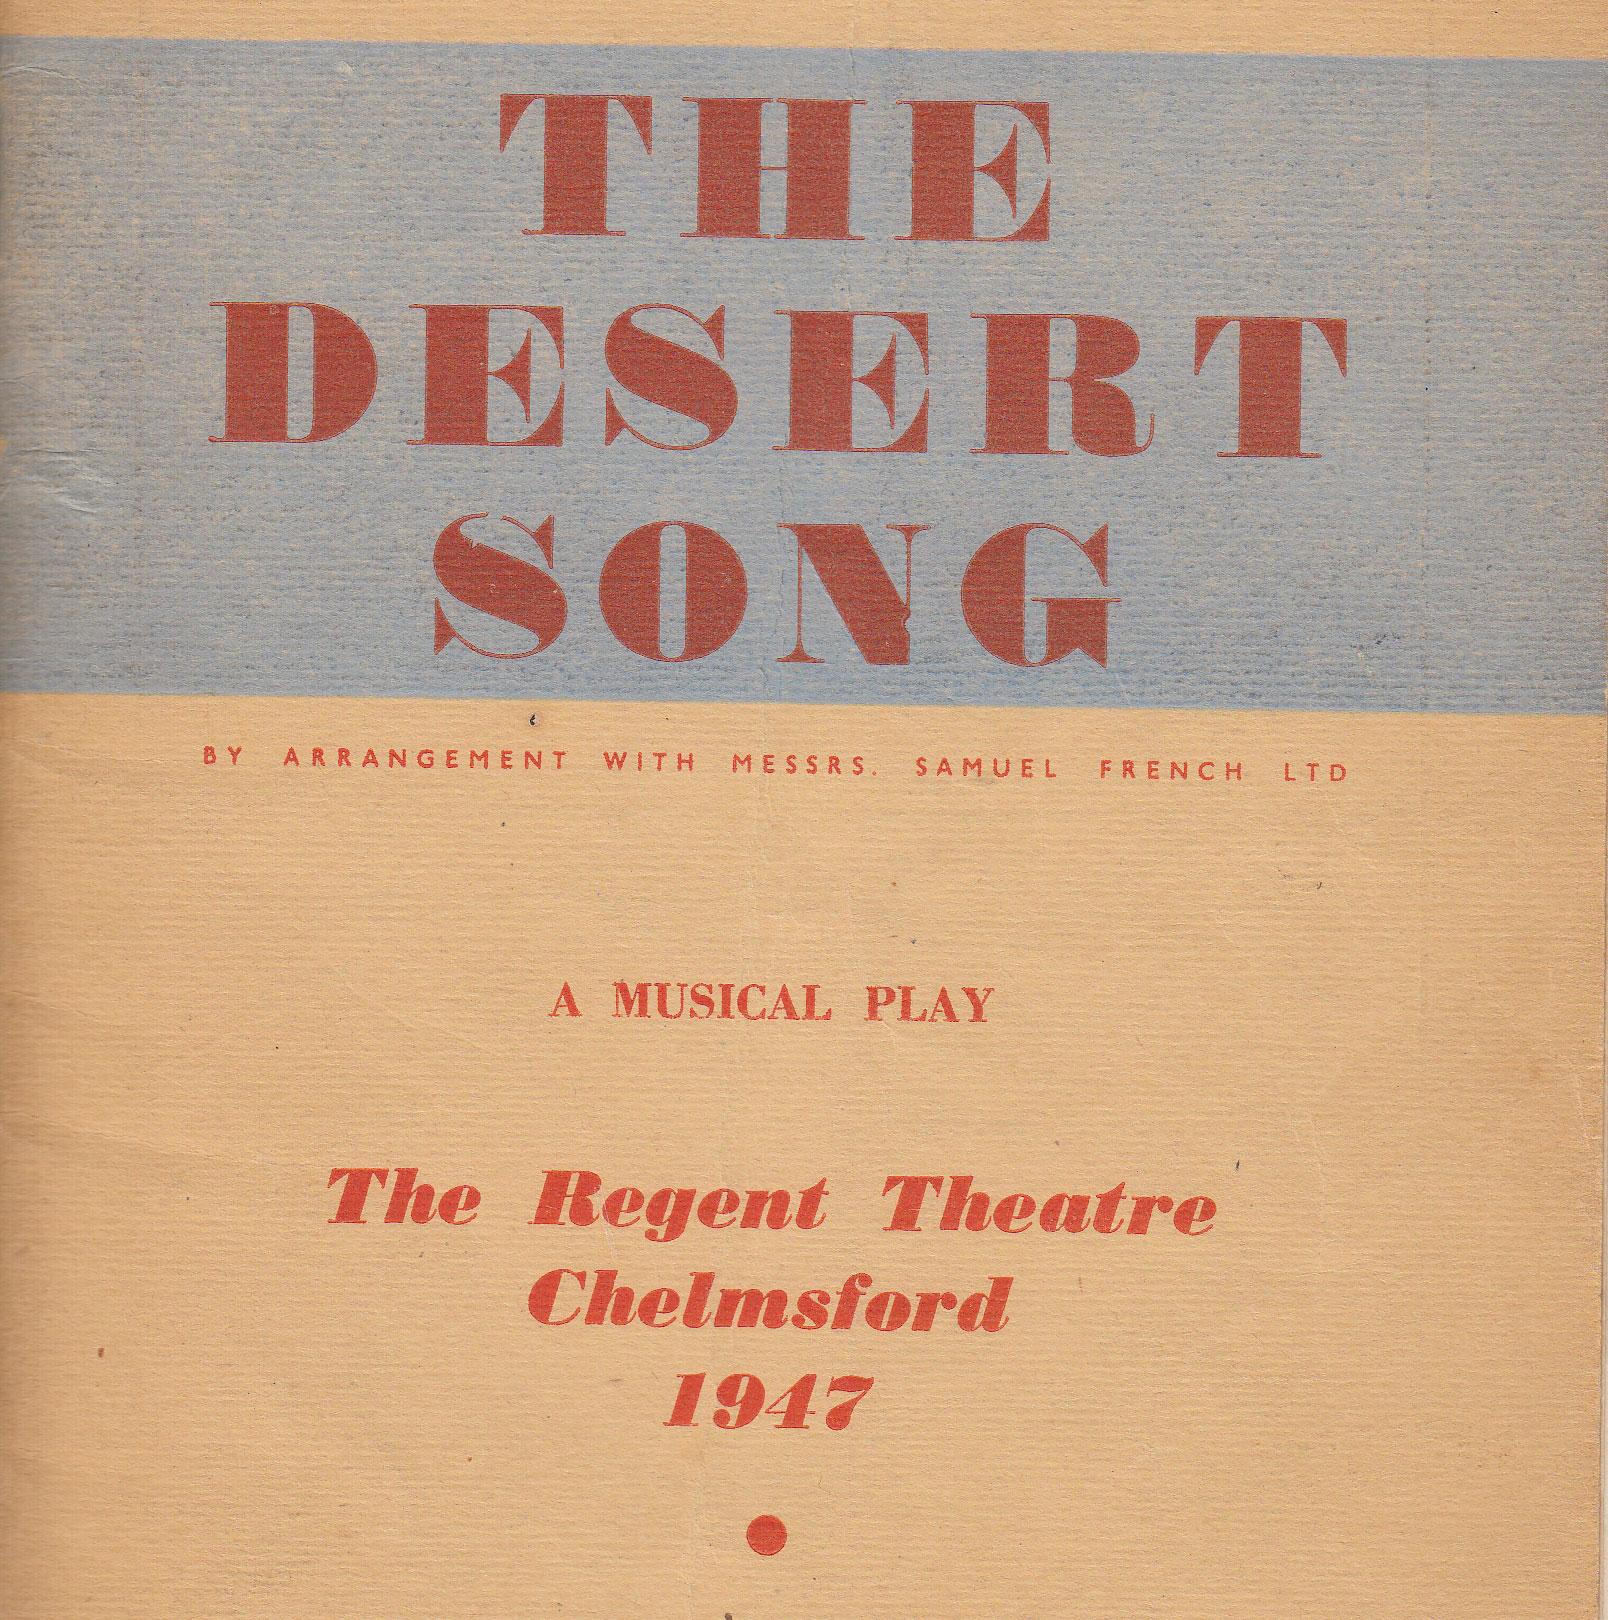 The Desert Song (1947)